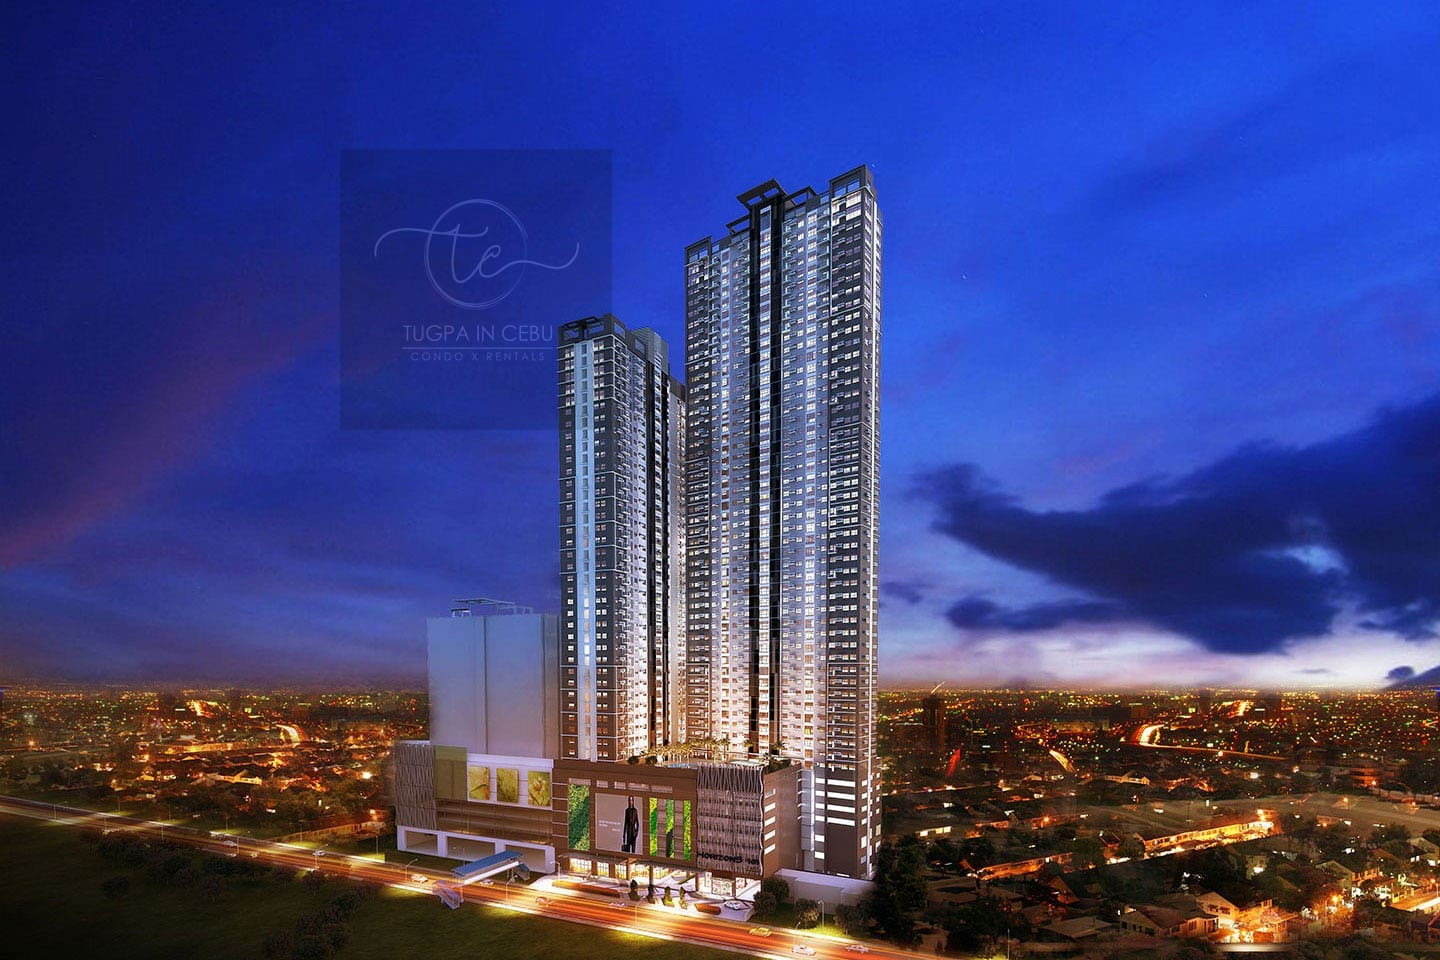 Artist's render of the two towers of Horizons 101 Condominium -- Cebu's tallest structure!